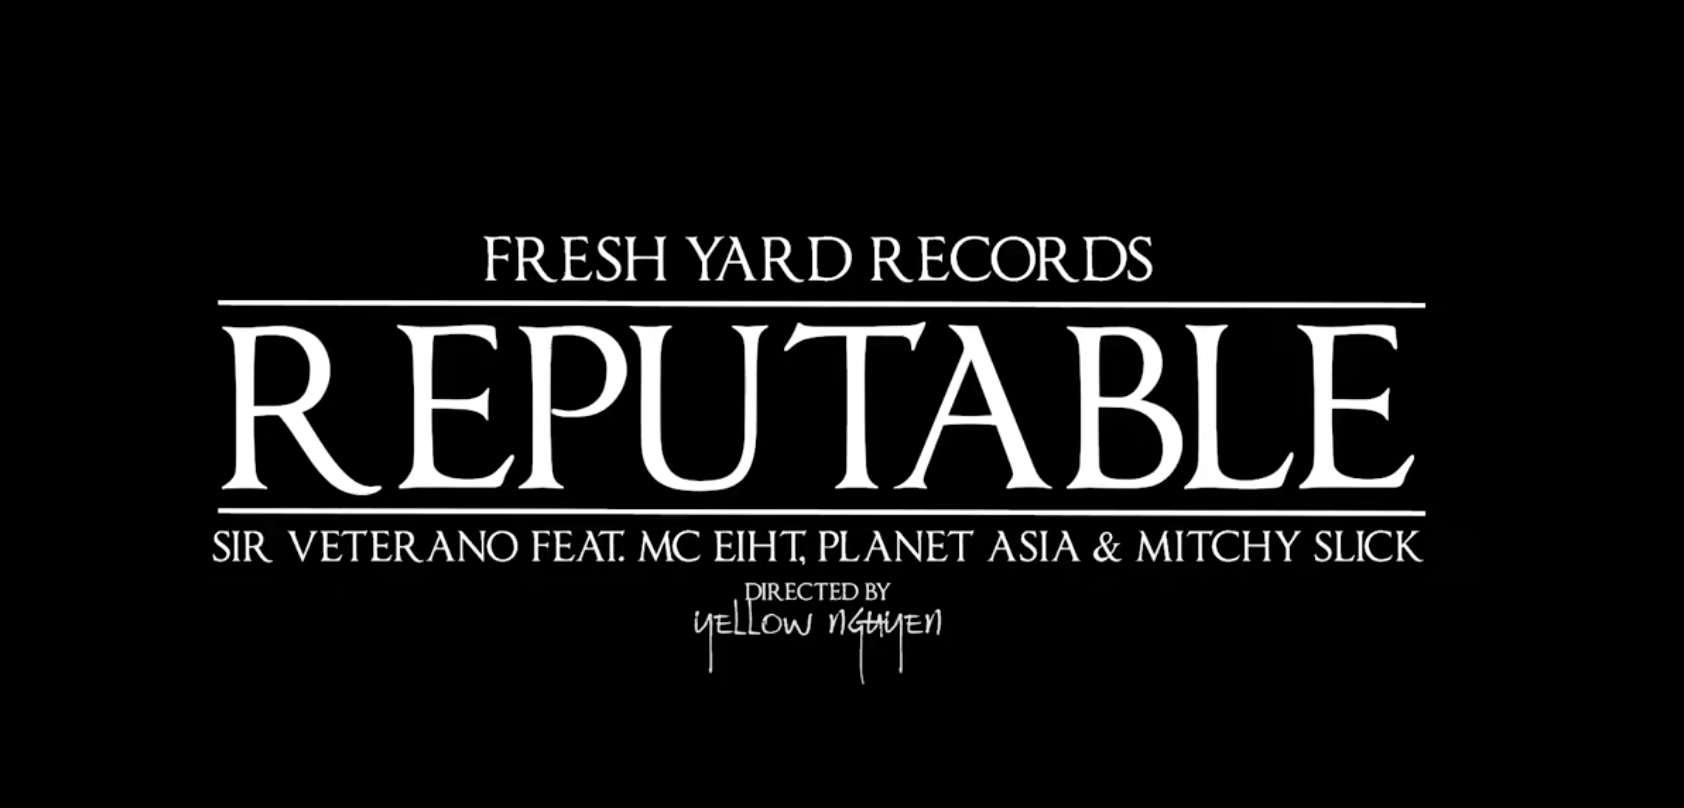 VIDEO: Sir Veterano - Reputable (feat. MC Eiht, Planet Asia & Mitchy Slick)